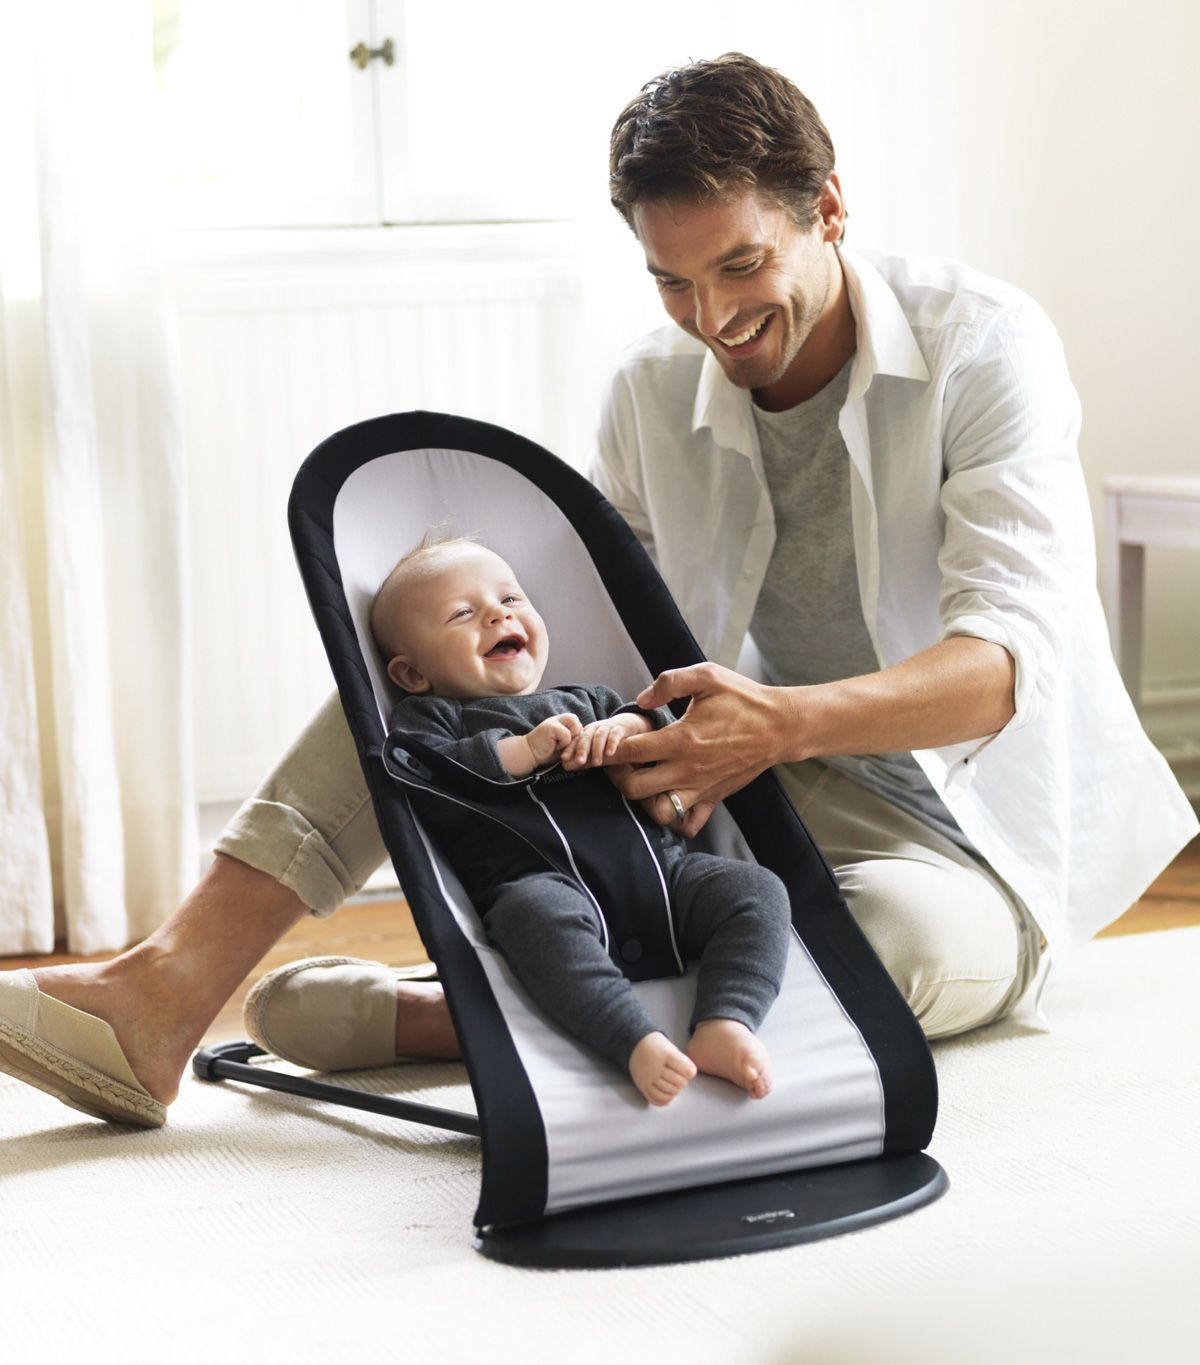 Ergonomic Bouncer With A Soft And Snug Design That Is Suitable Right From Day One Http Babyglitter Gr T Br Best Baby Bouncer Baby Bjorn Bouncer Baby Bouncer